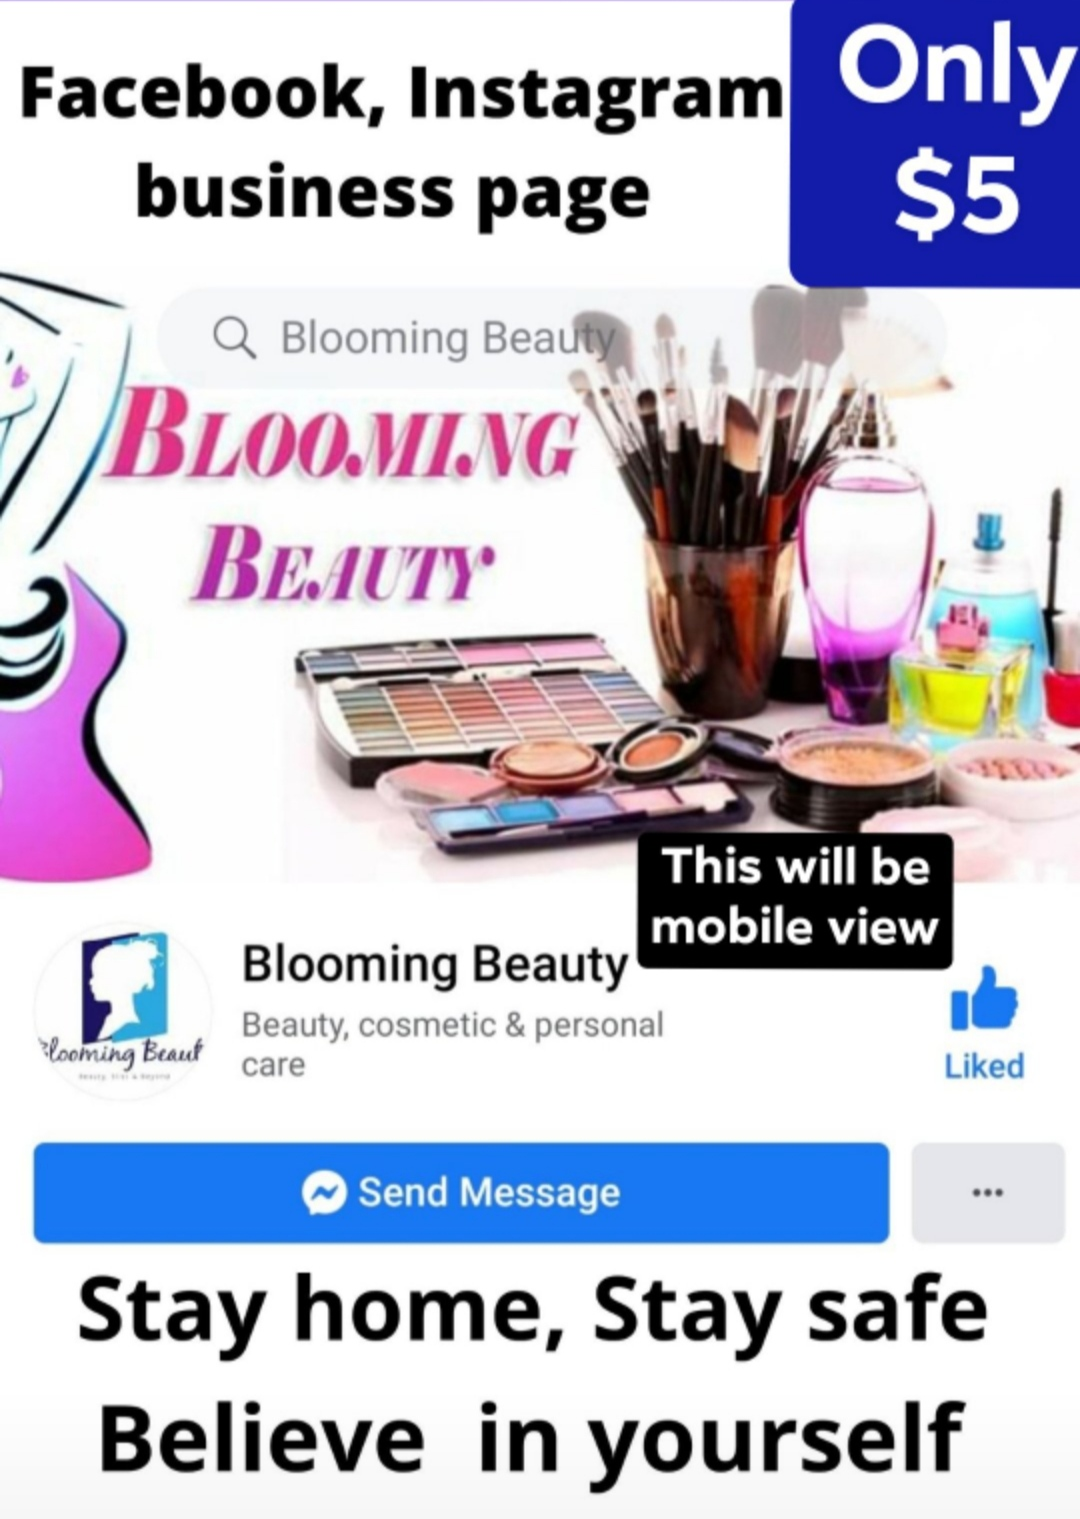 Create,  Develop and Promote business page for facebook, Instagram, LinkedIn